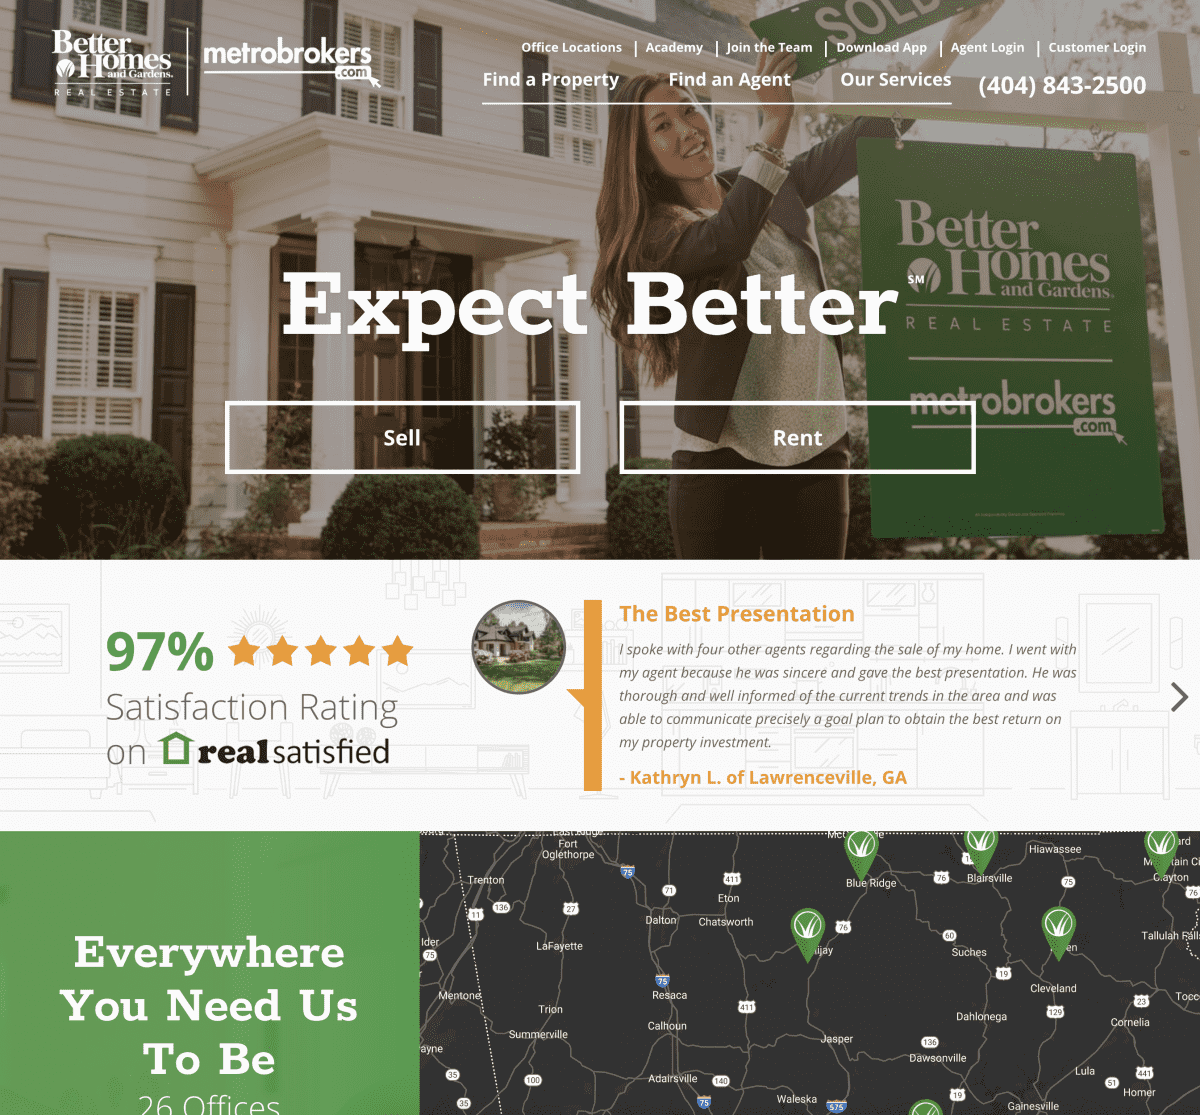 Image of website for Better Homes and Gardens MetroBrokers